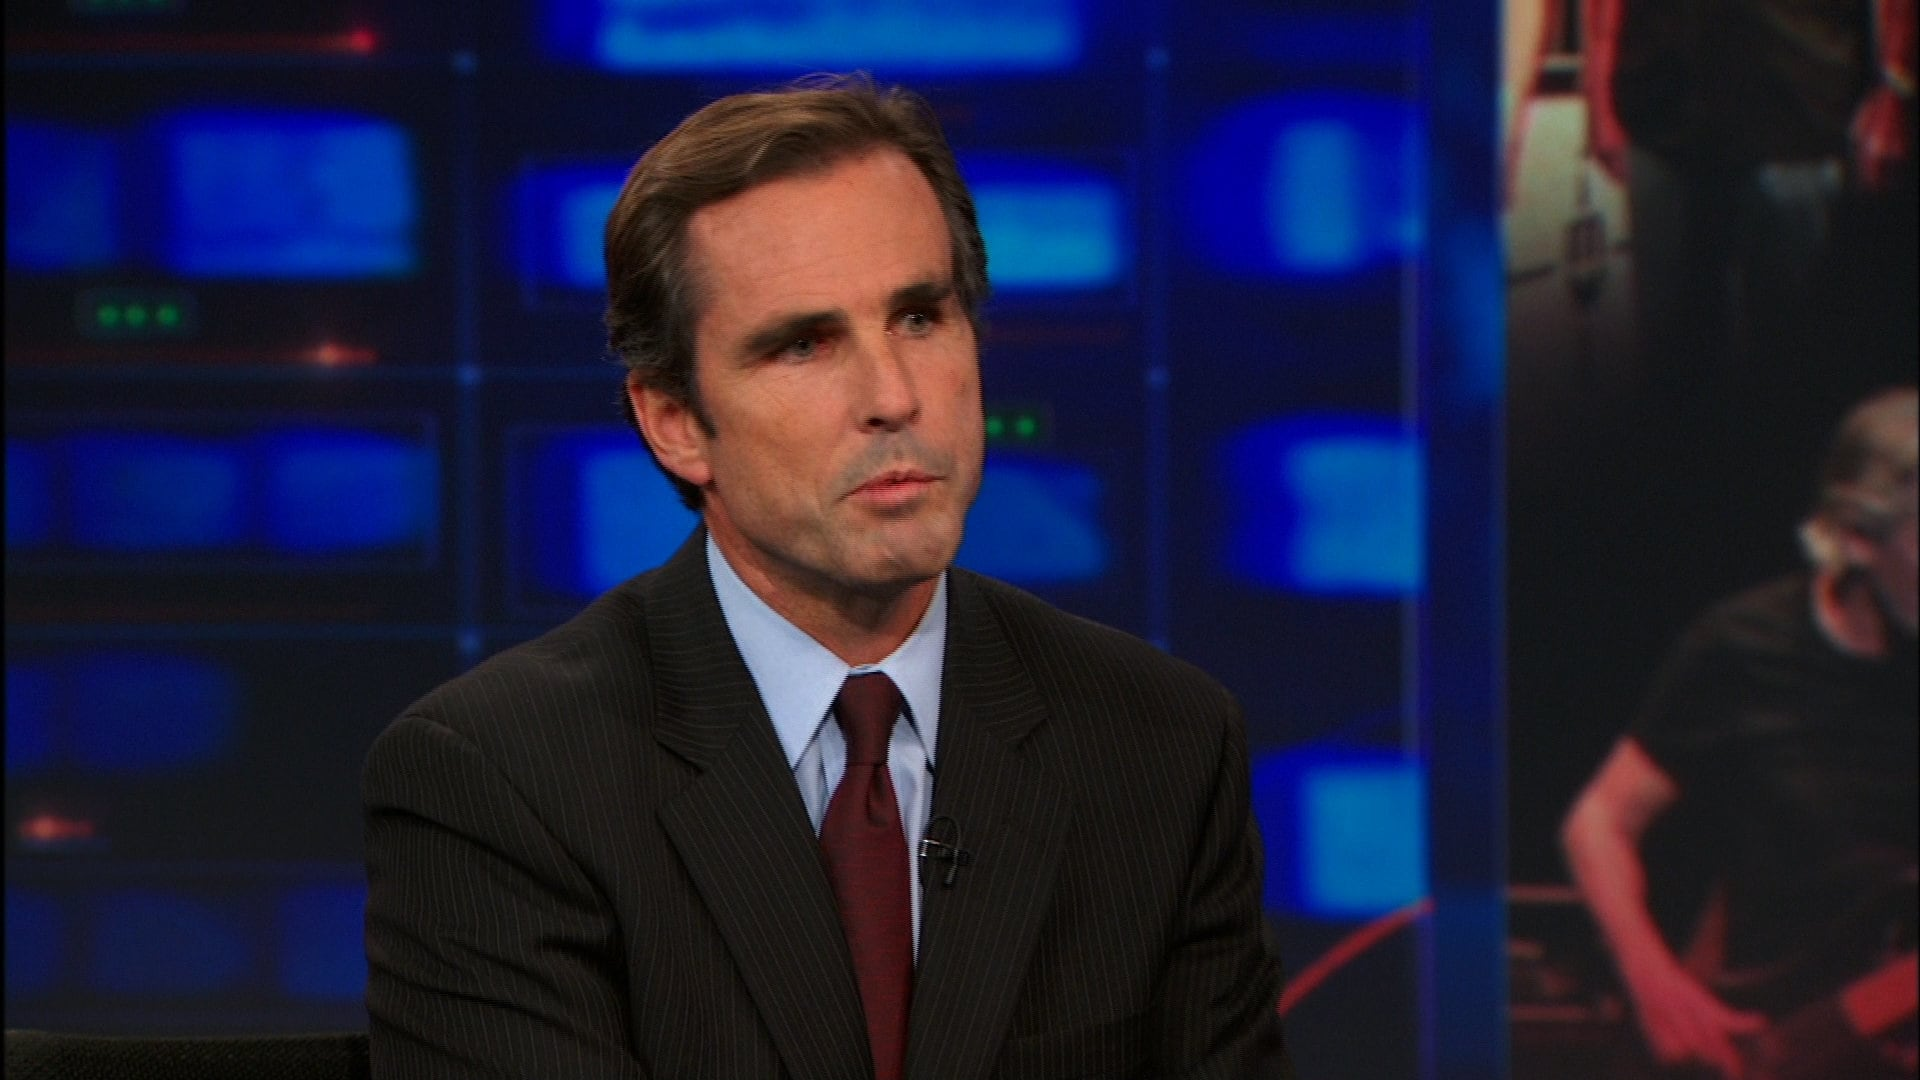 The Daily Show with Trevor Noah Season 19 :Episode 17  Bob Woodruff